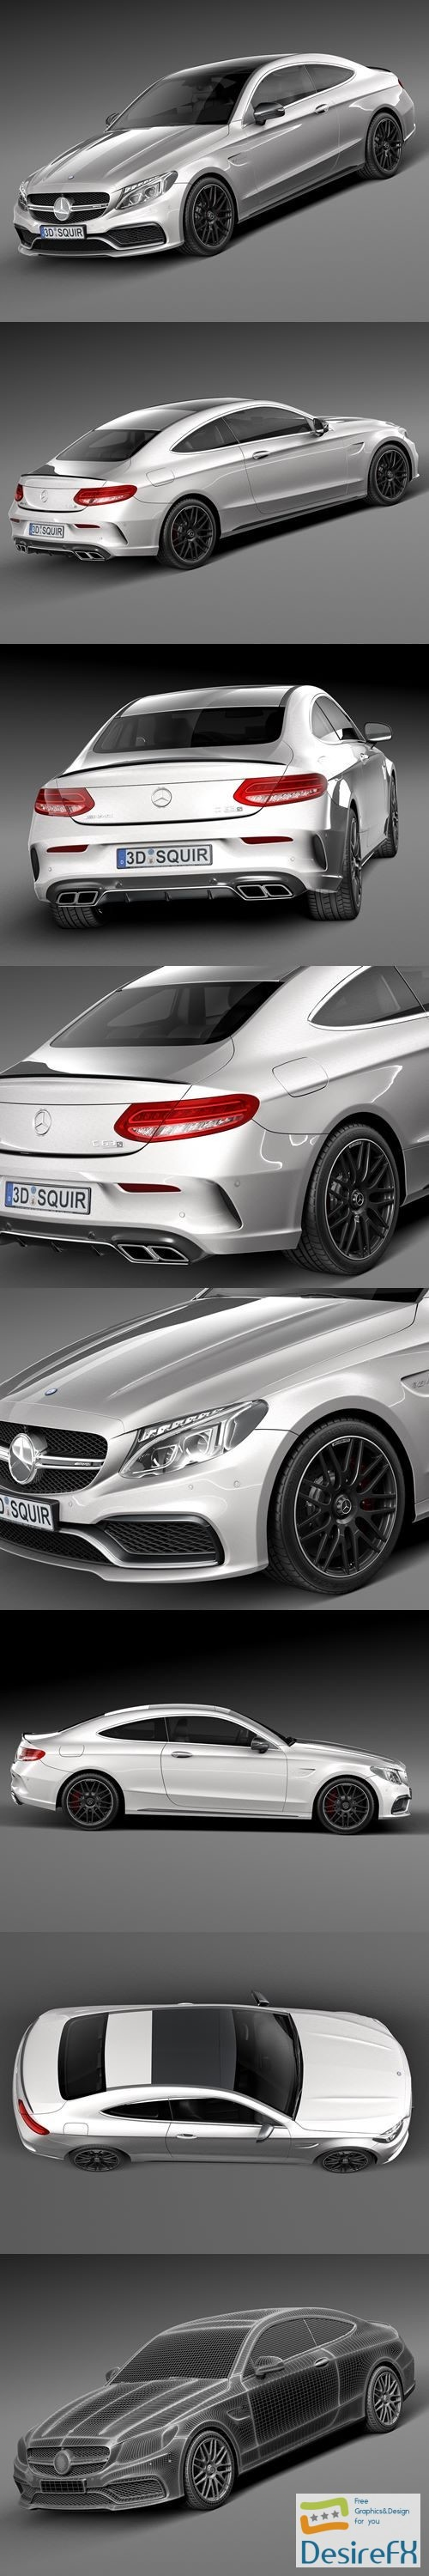 3d-models - Mercedes-Benz C63 AMG Coupe 2017 3D Model